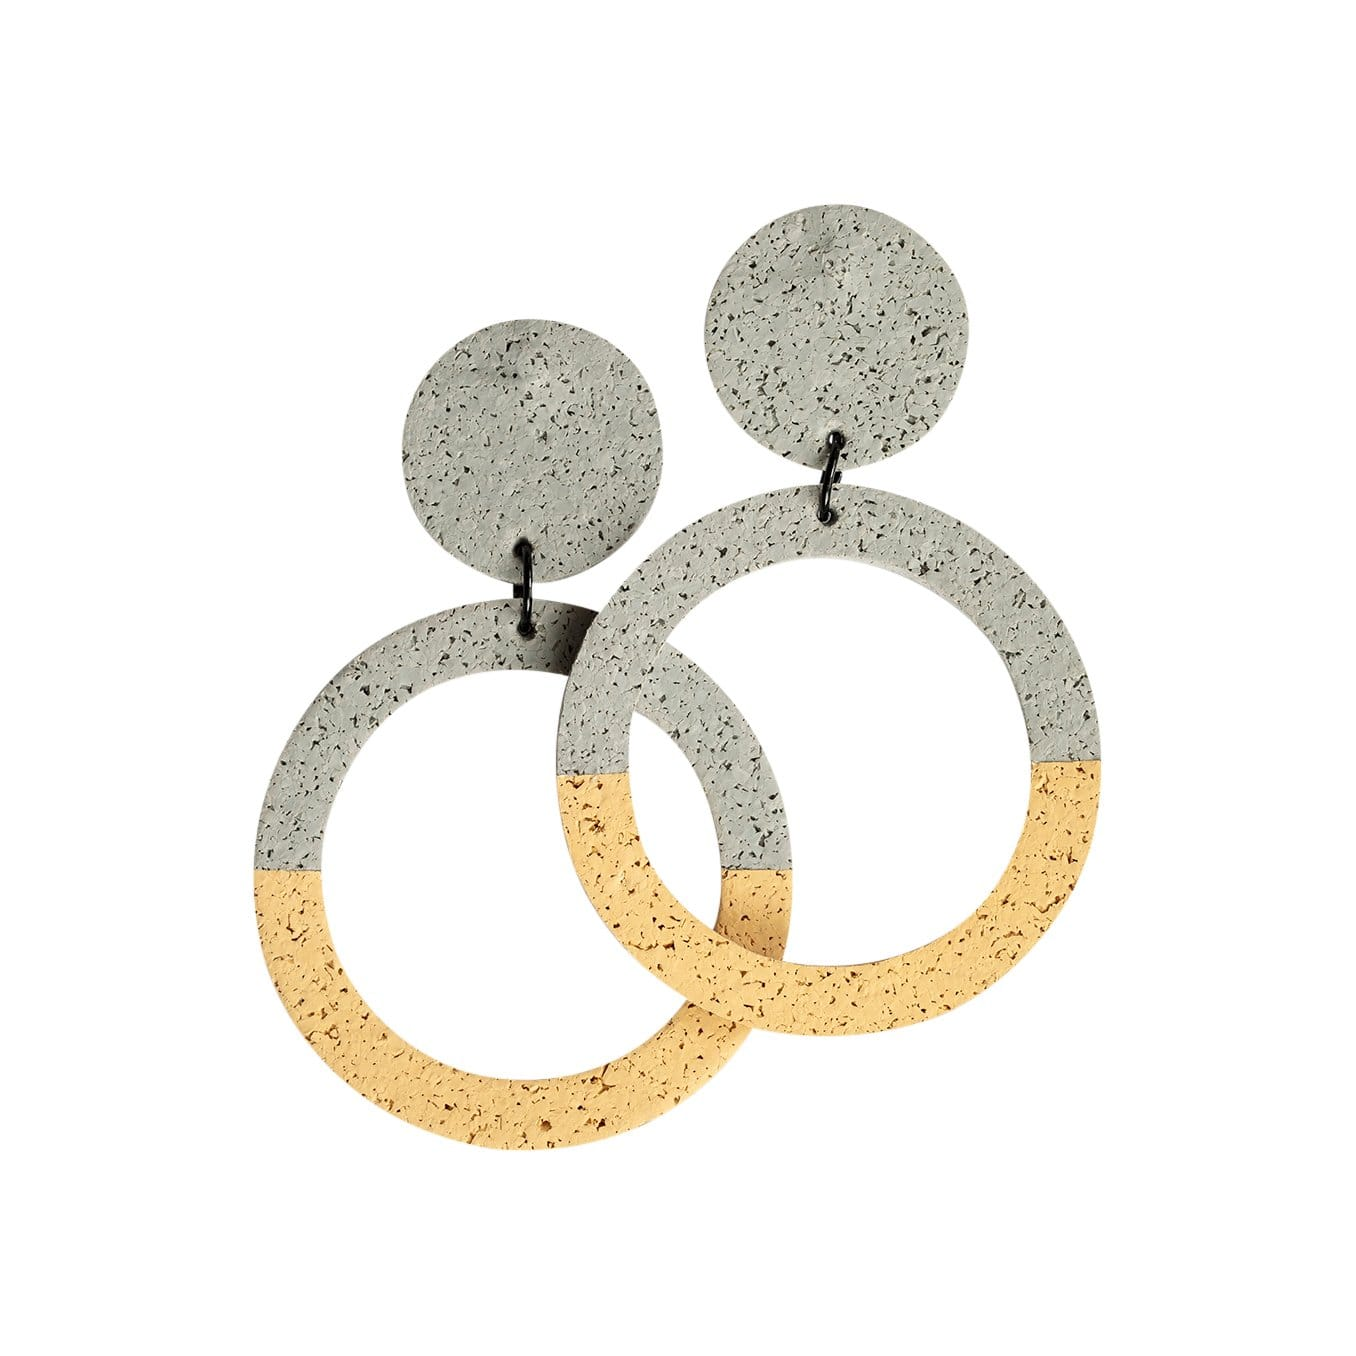 Champ.Co Earrings Large / Grey + Sand Two Tone Penny Hoops